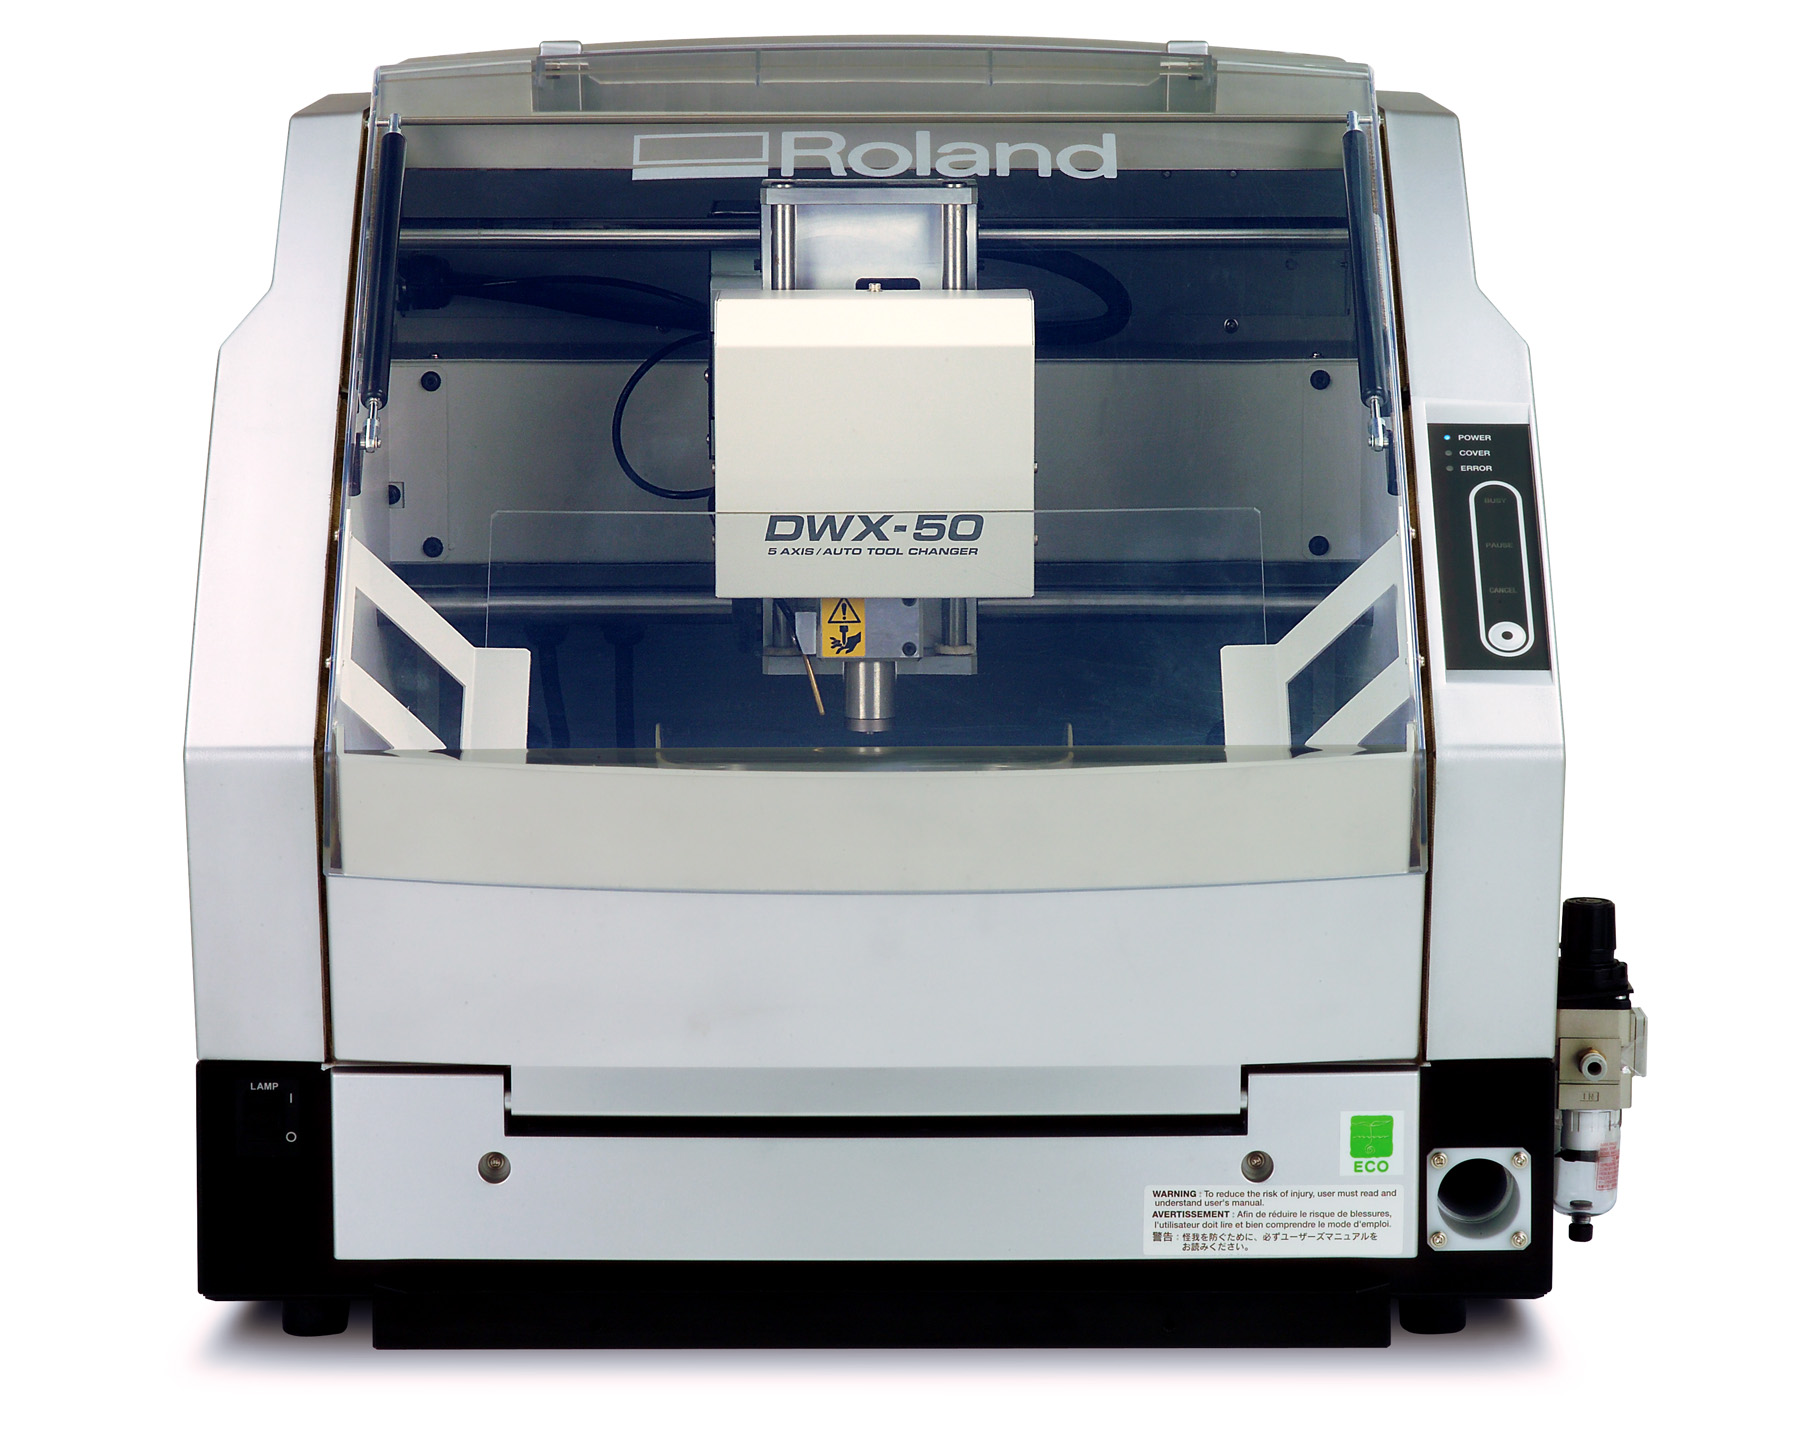 Our milling crown is perfected with the strategy that we created and programmed into this Roland Milling Machine, giving you the most precise contact and bite needed.